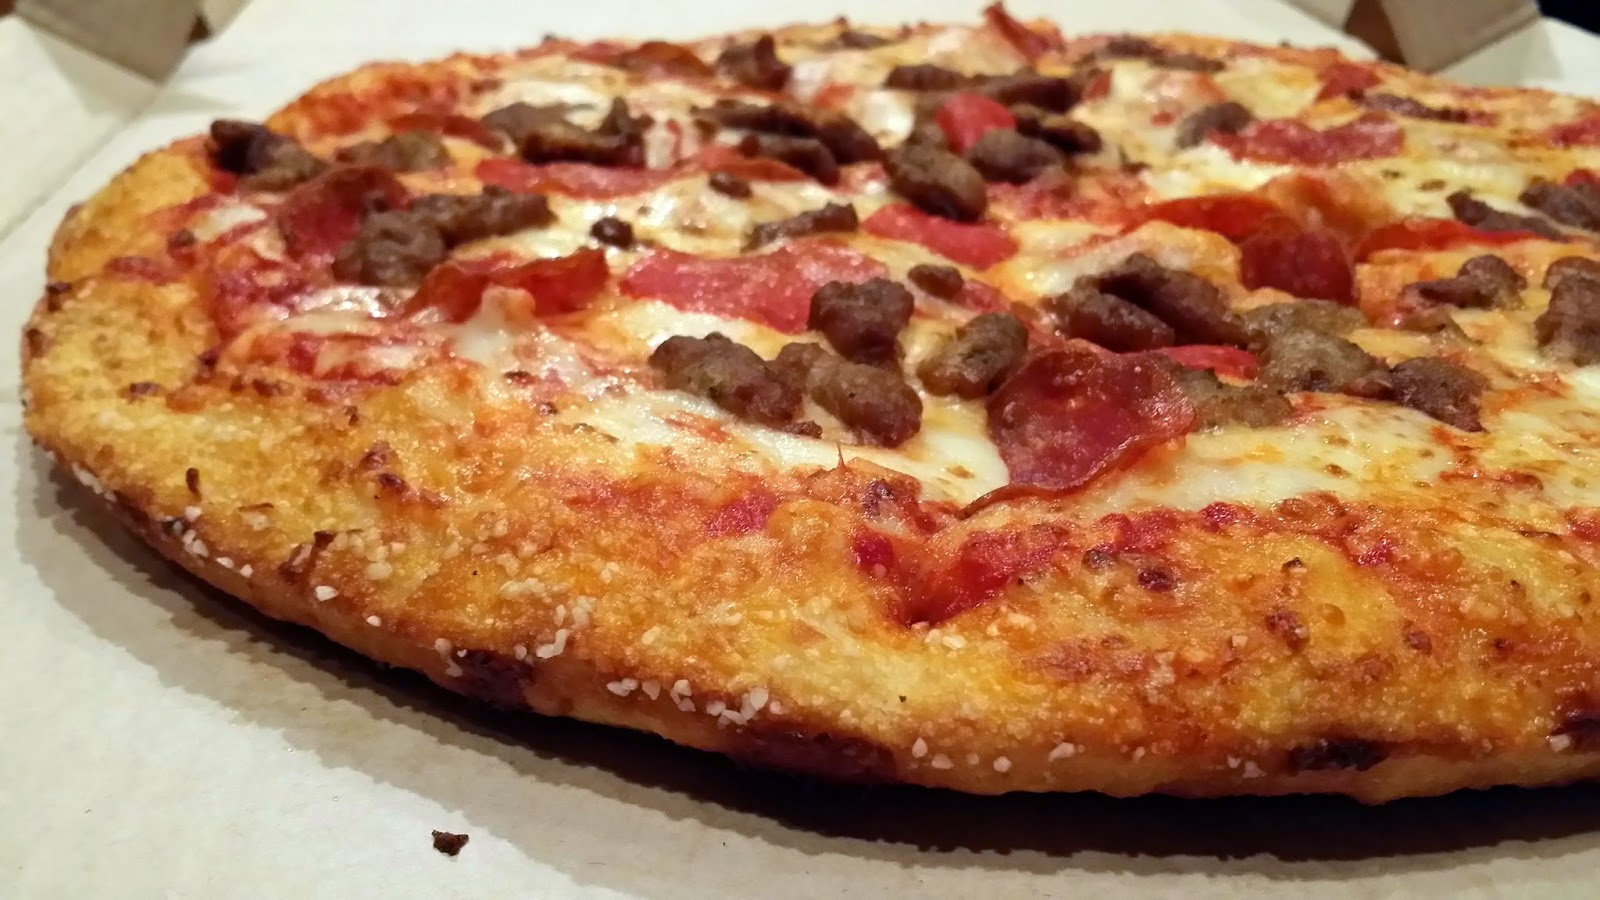 We Enjoy Quite A Few Of The Smaller Chains Round Up HERE But Its Been Several Years Since Ive Eaten Pie From Dominos Little Caesars Or Pizza Hut